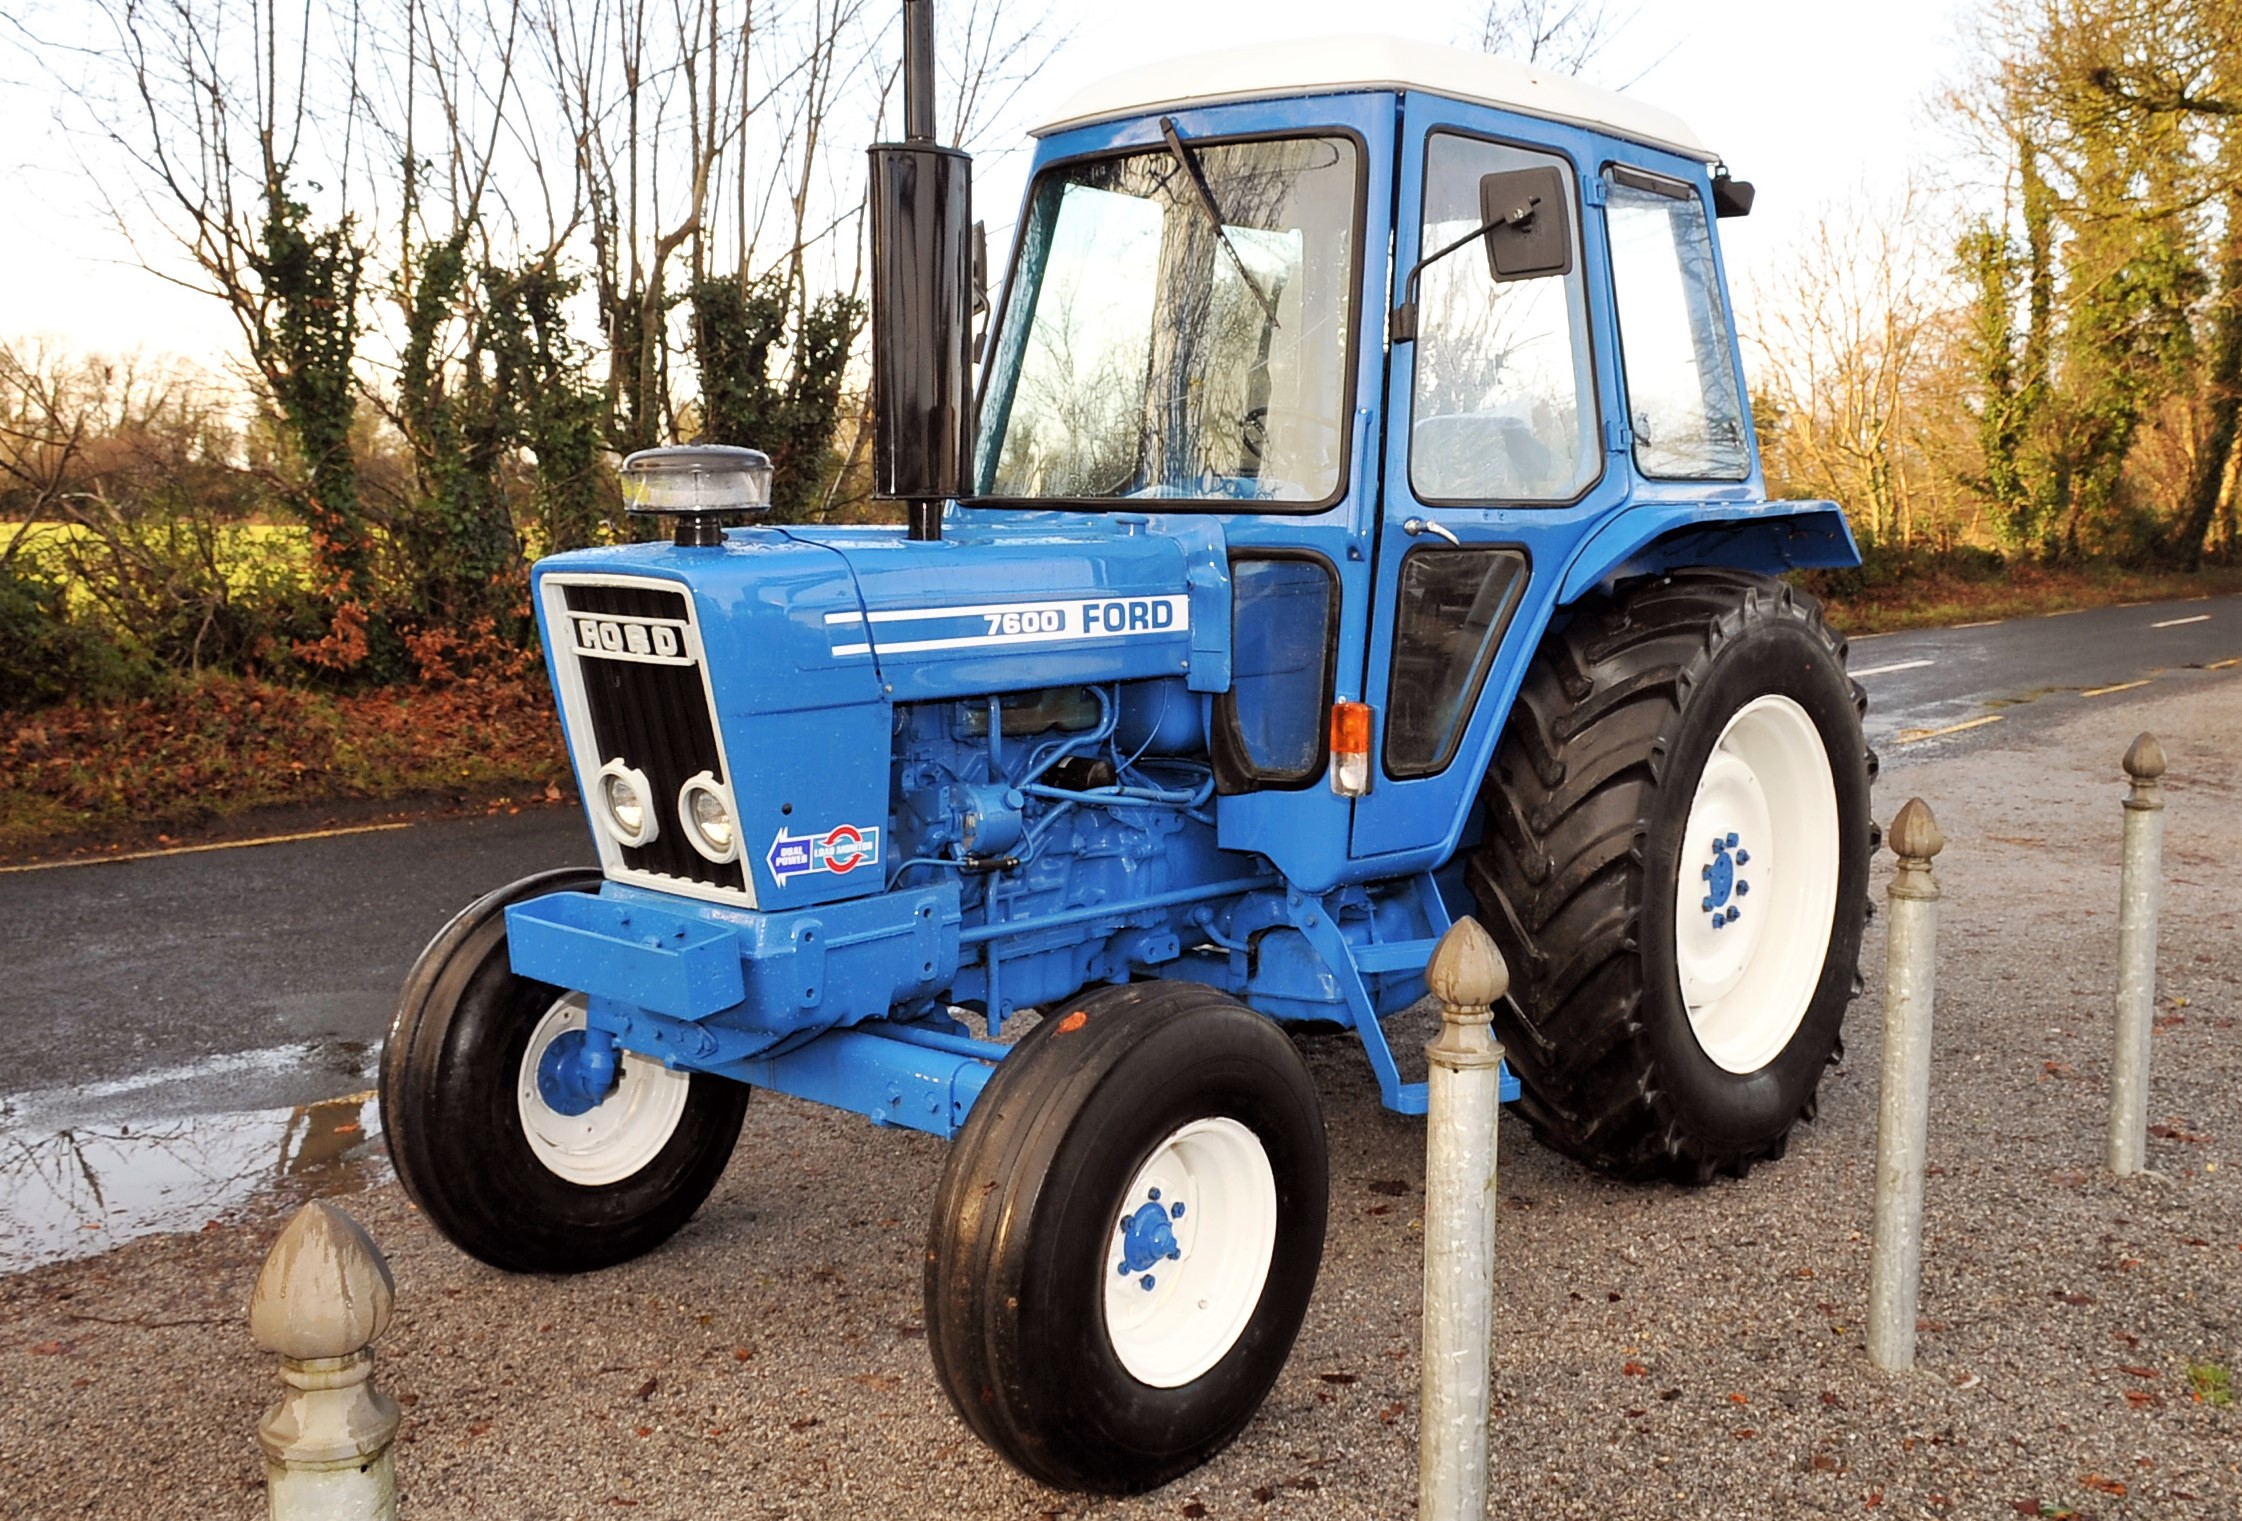 Ford Q Cab Ebay Tractor 3600 Wiring Harness Classic Corner A True Blue All Decked Out With Comfy